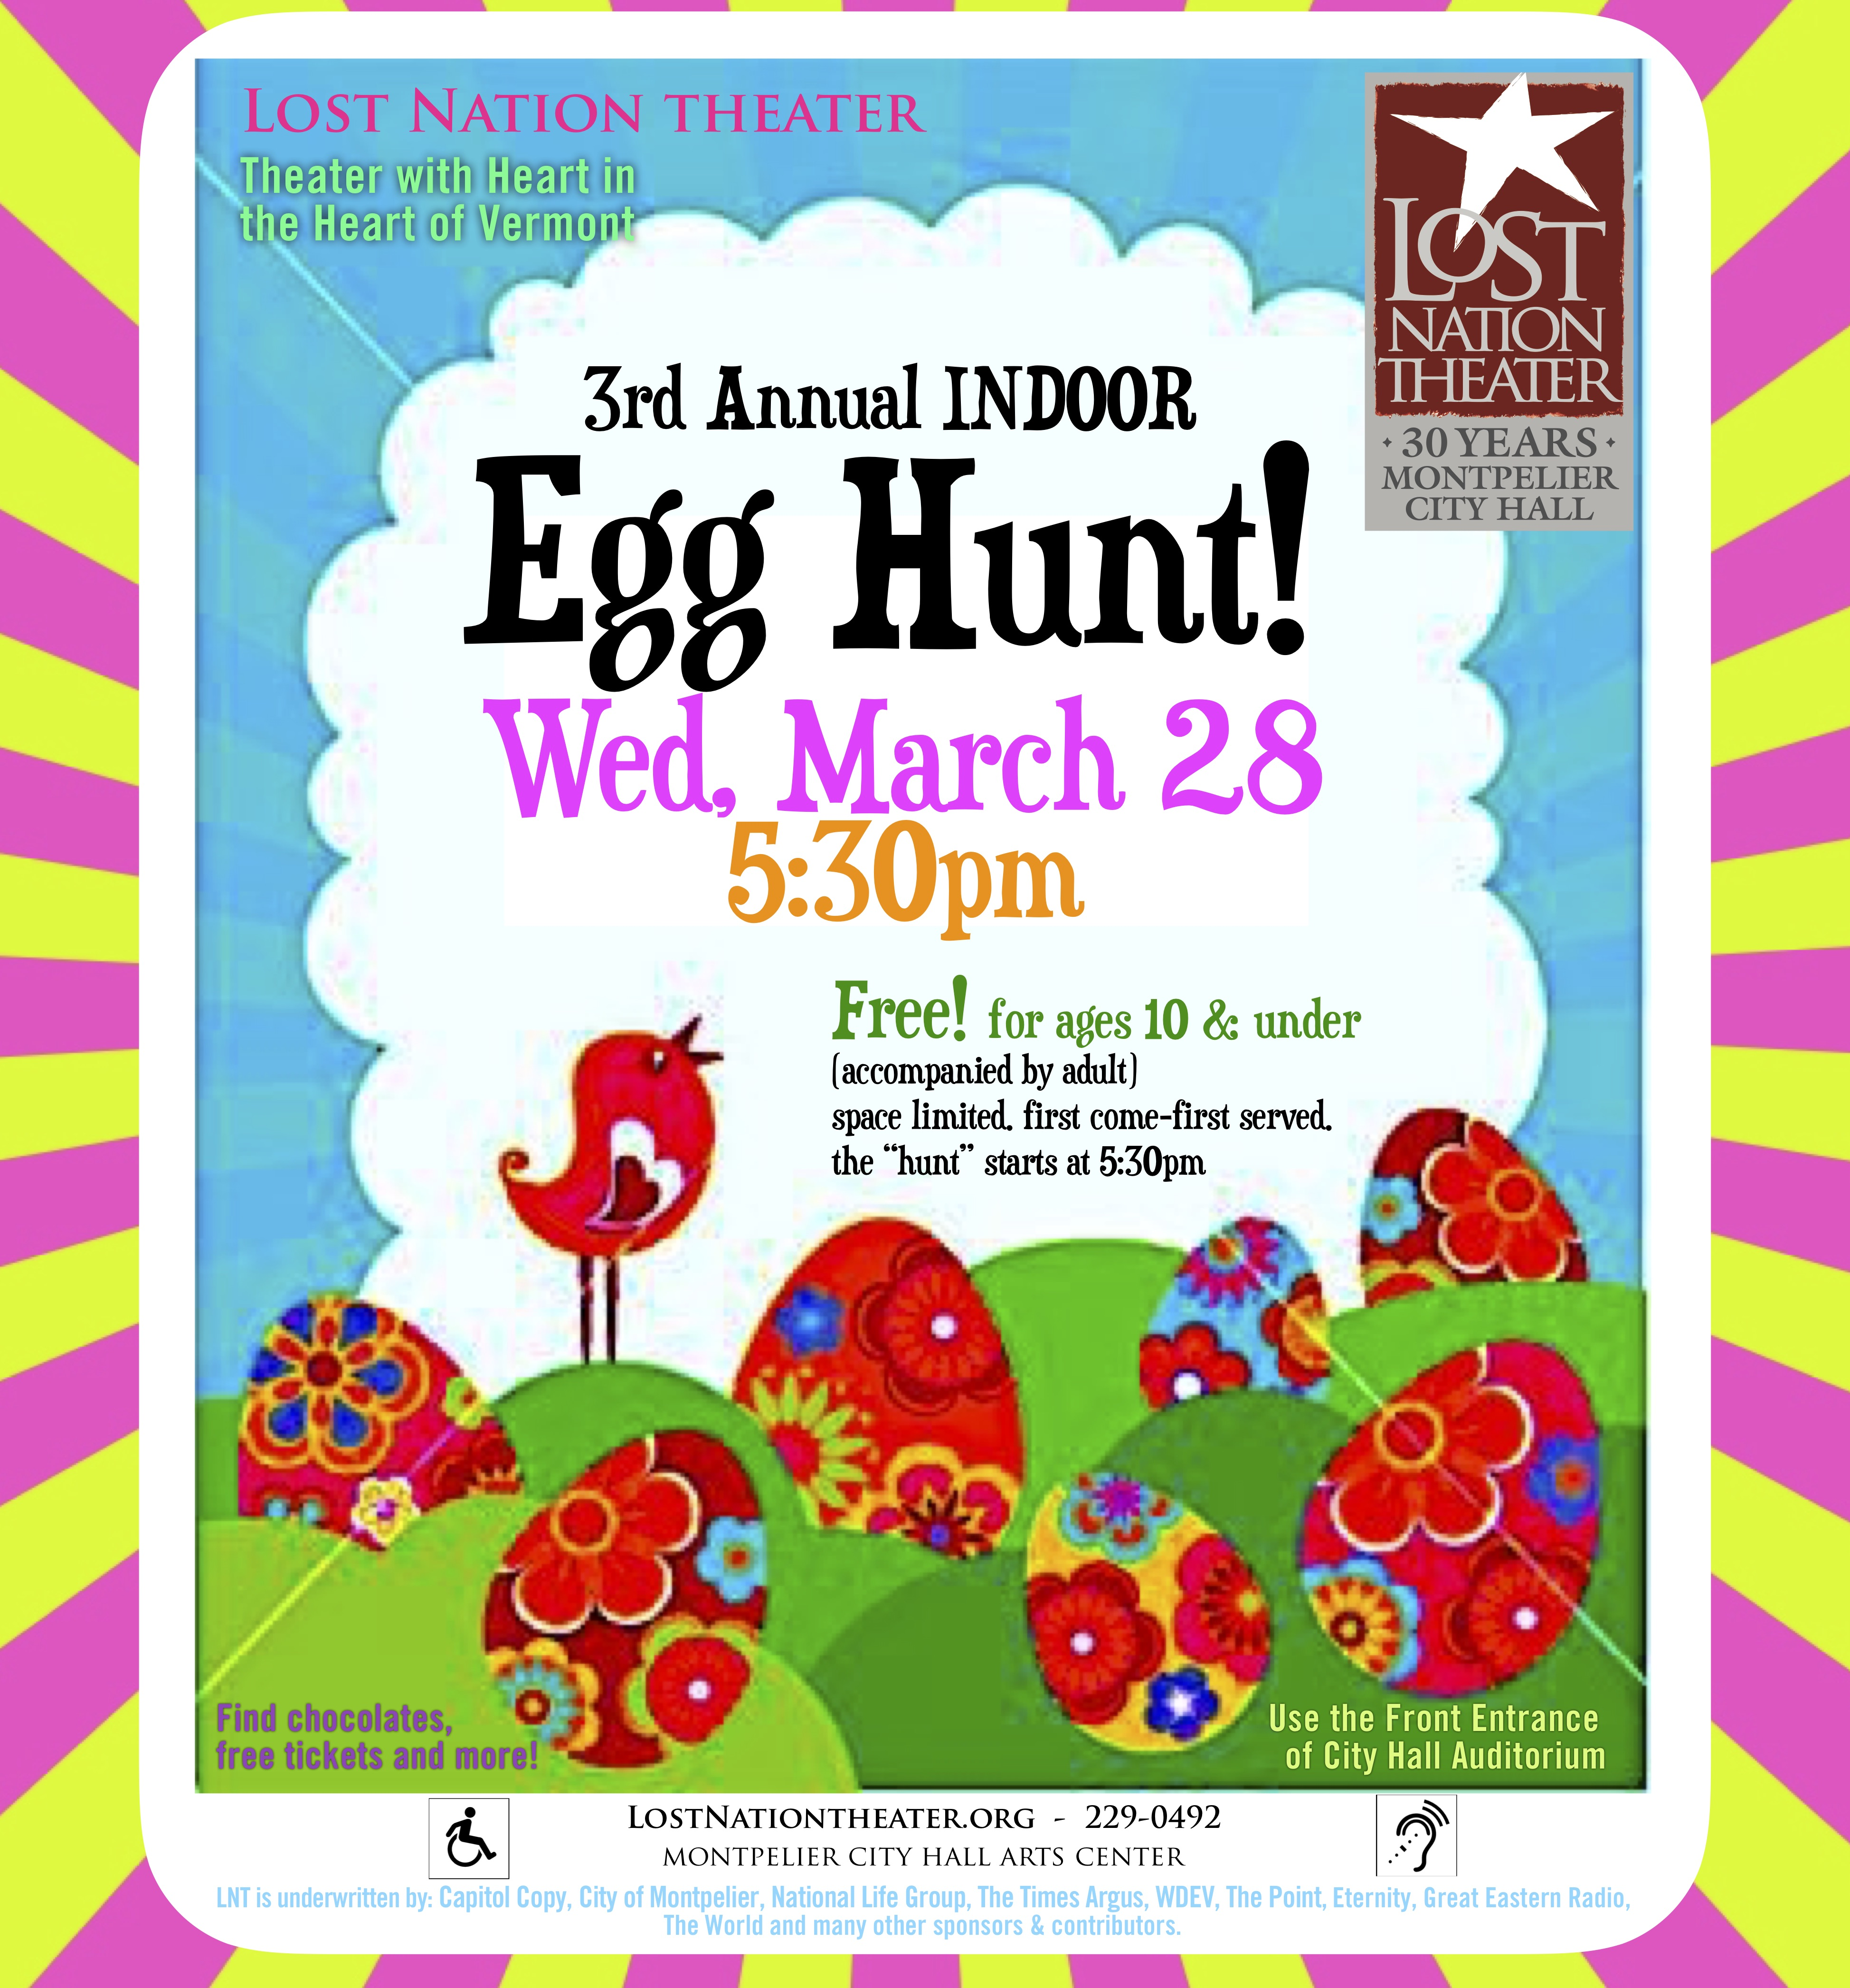 picture of LNT sandwich board poster for Egg Hunt 2018